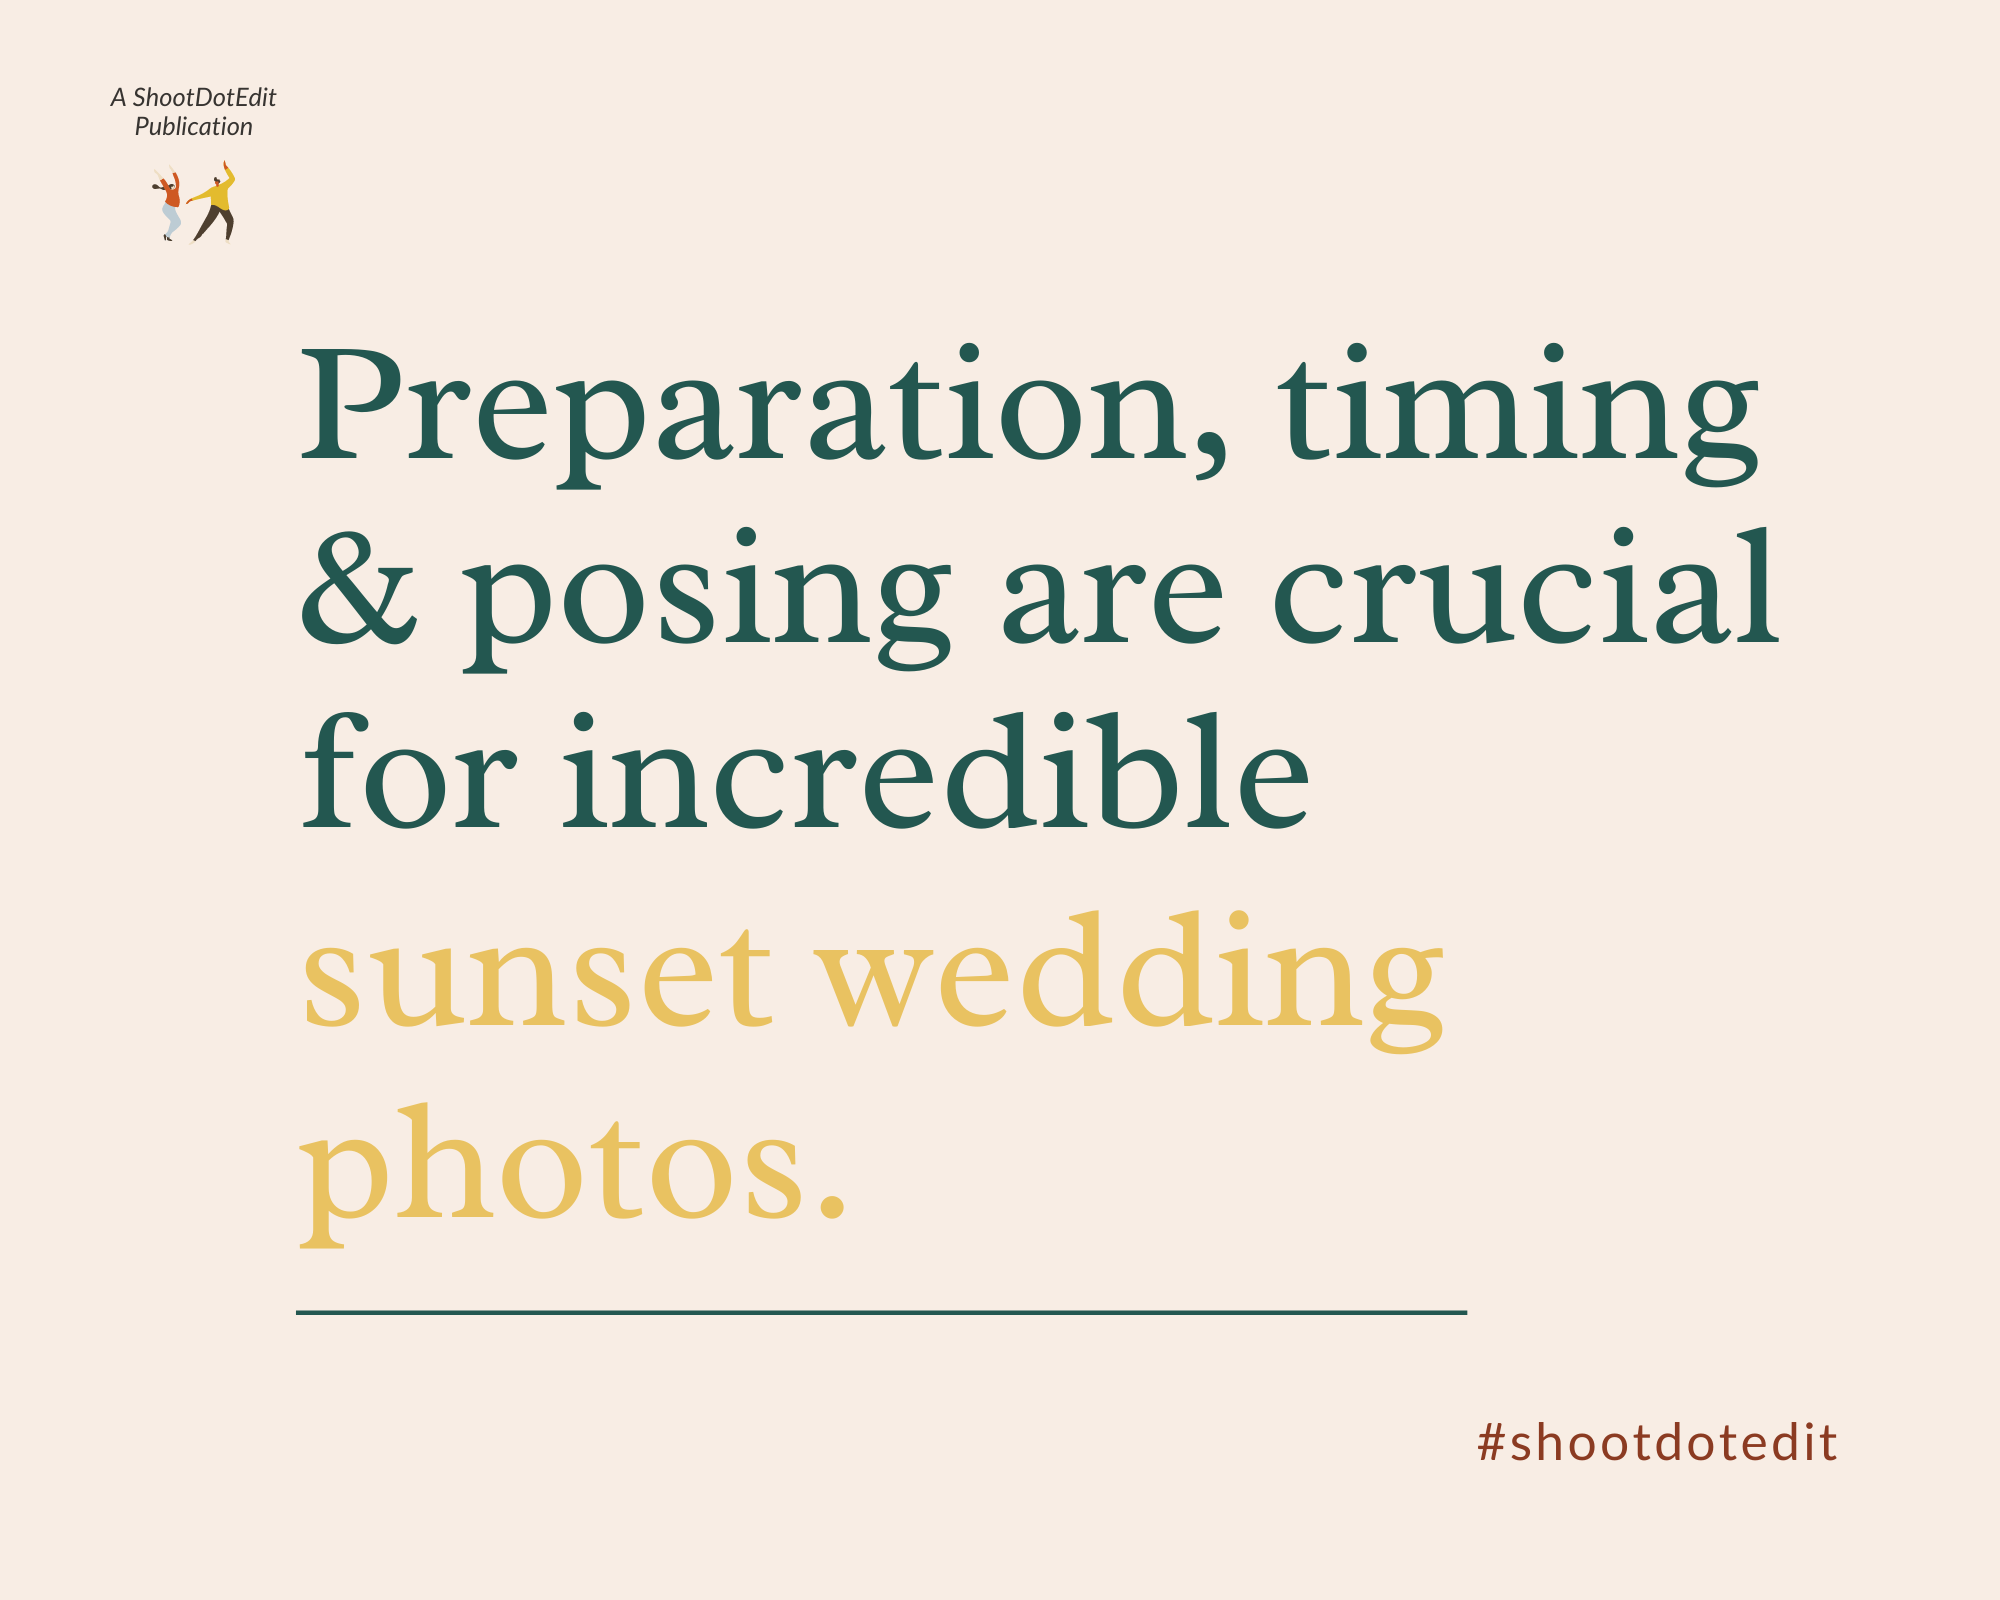 Preparation, timing, and posing are crucial for incredible sunset wedding photos